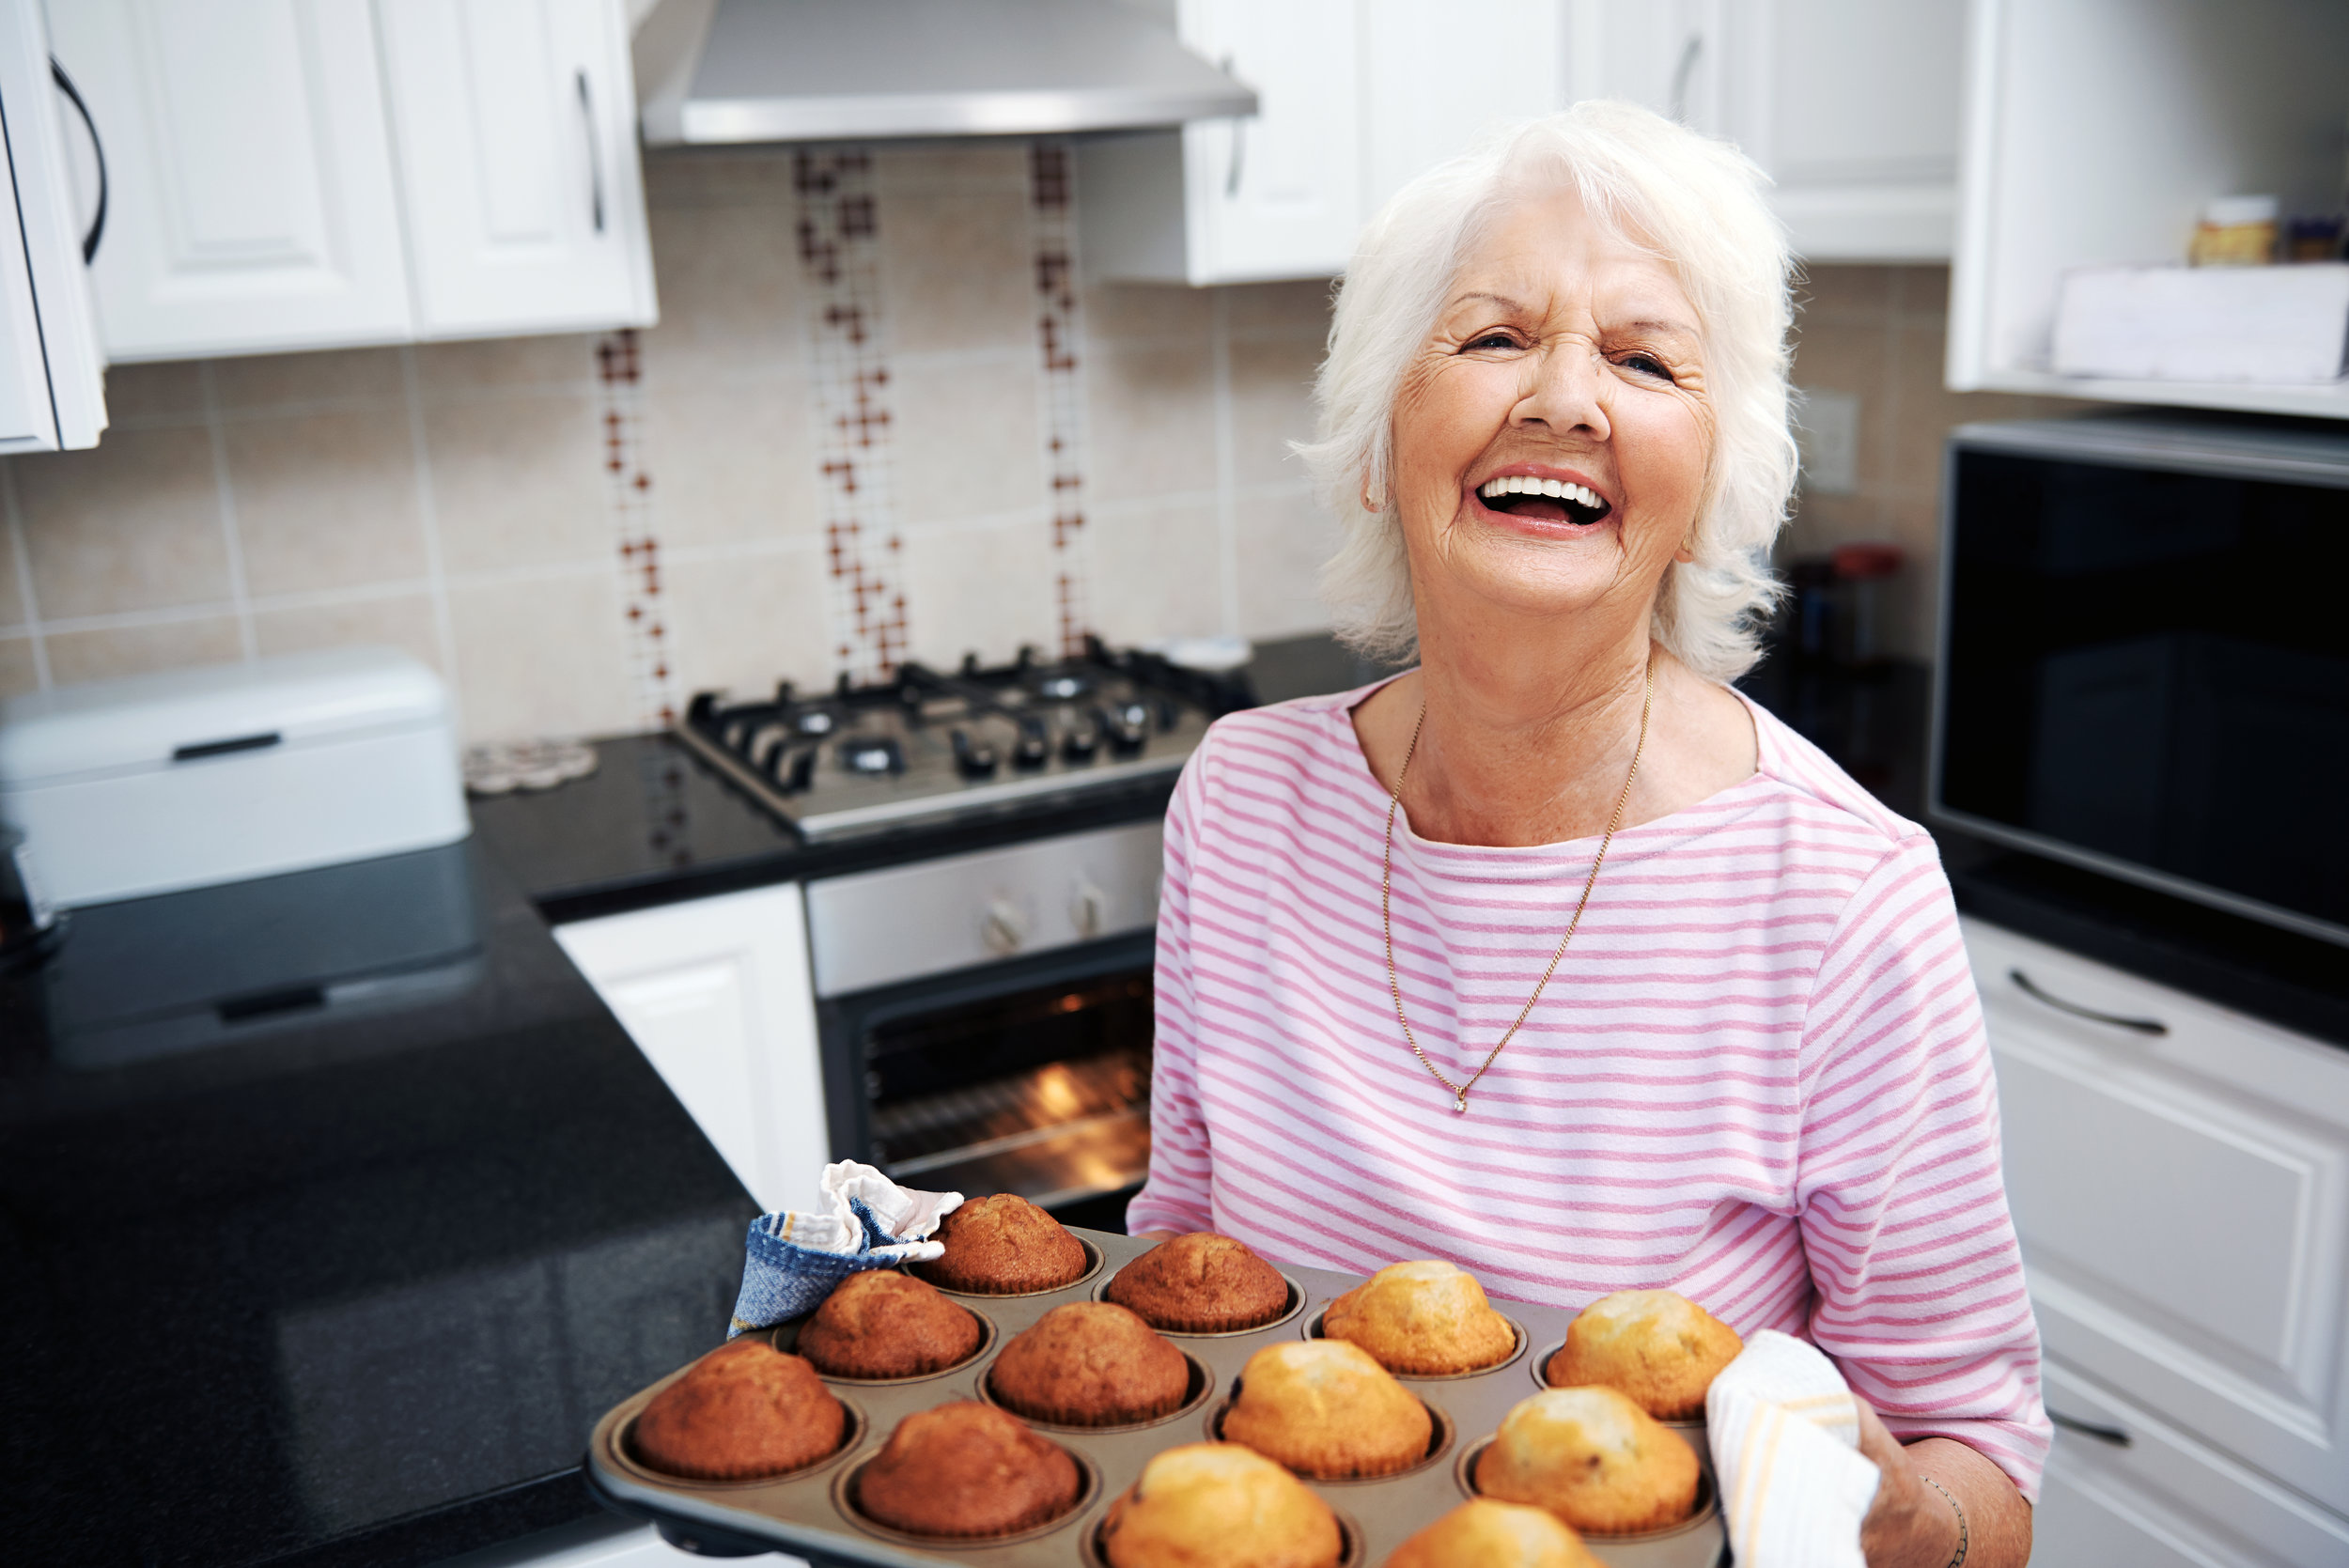 an elderly woman holding a tray of freshly baked muffins